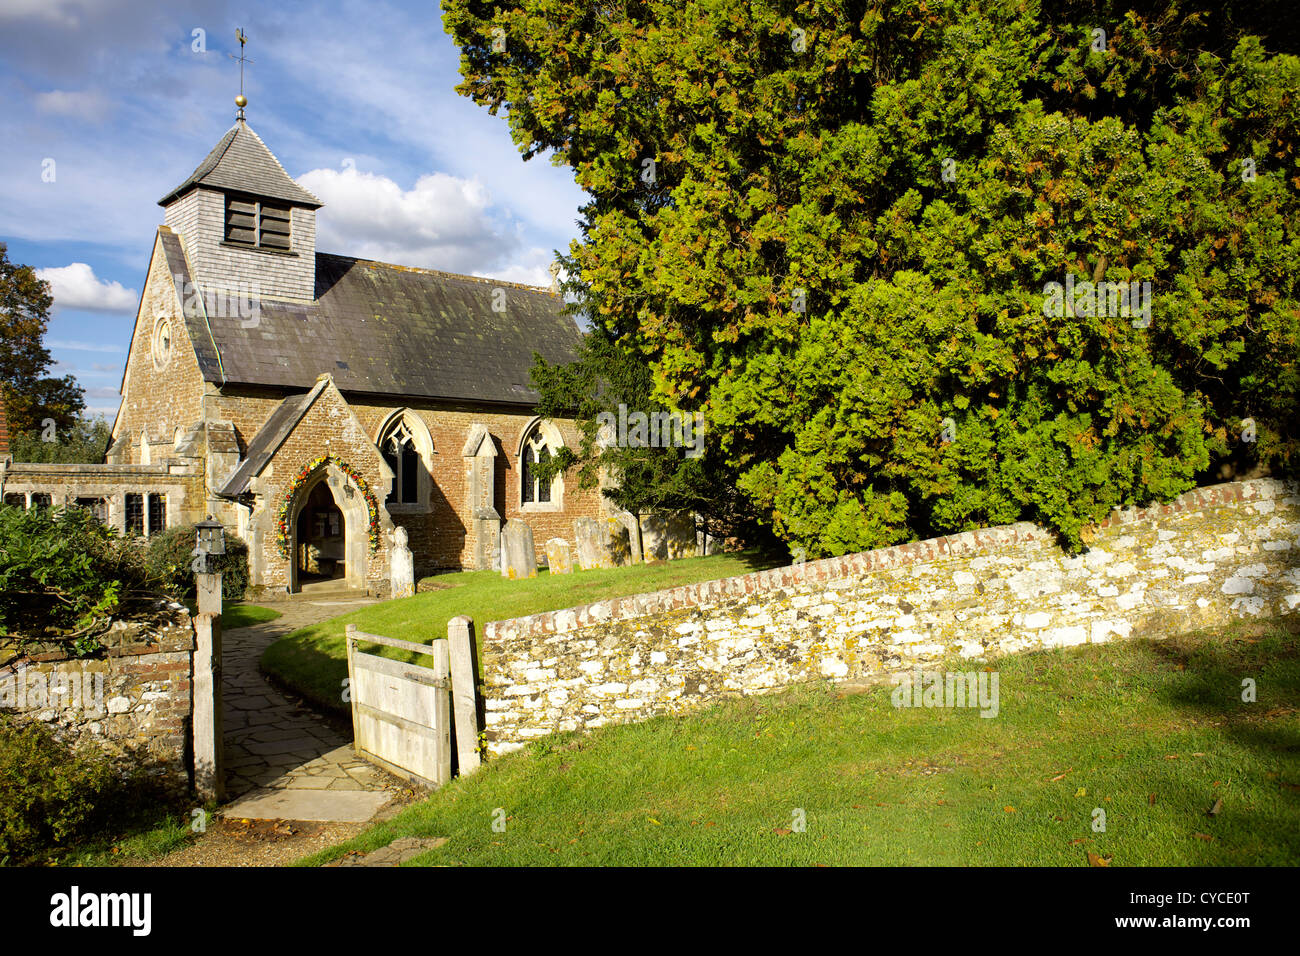 St peters church hambledon surrey england uk gb rural stock st peters church hambledon surrey england uk gb rural england english great britain british countryside village sciox Image collections